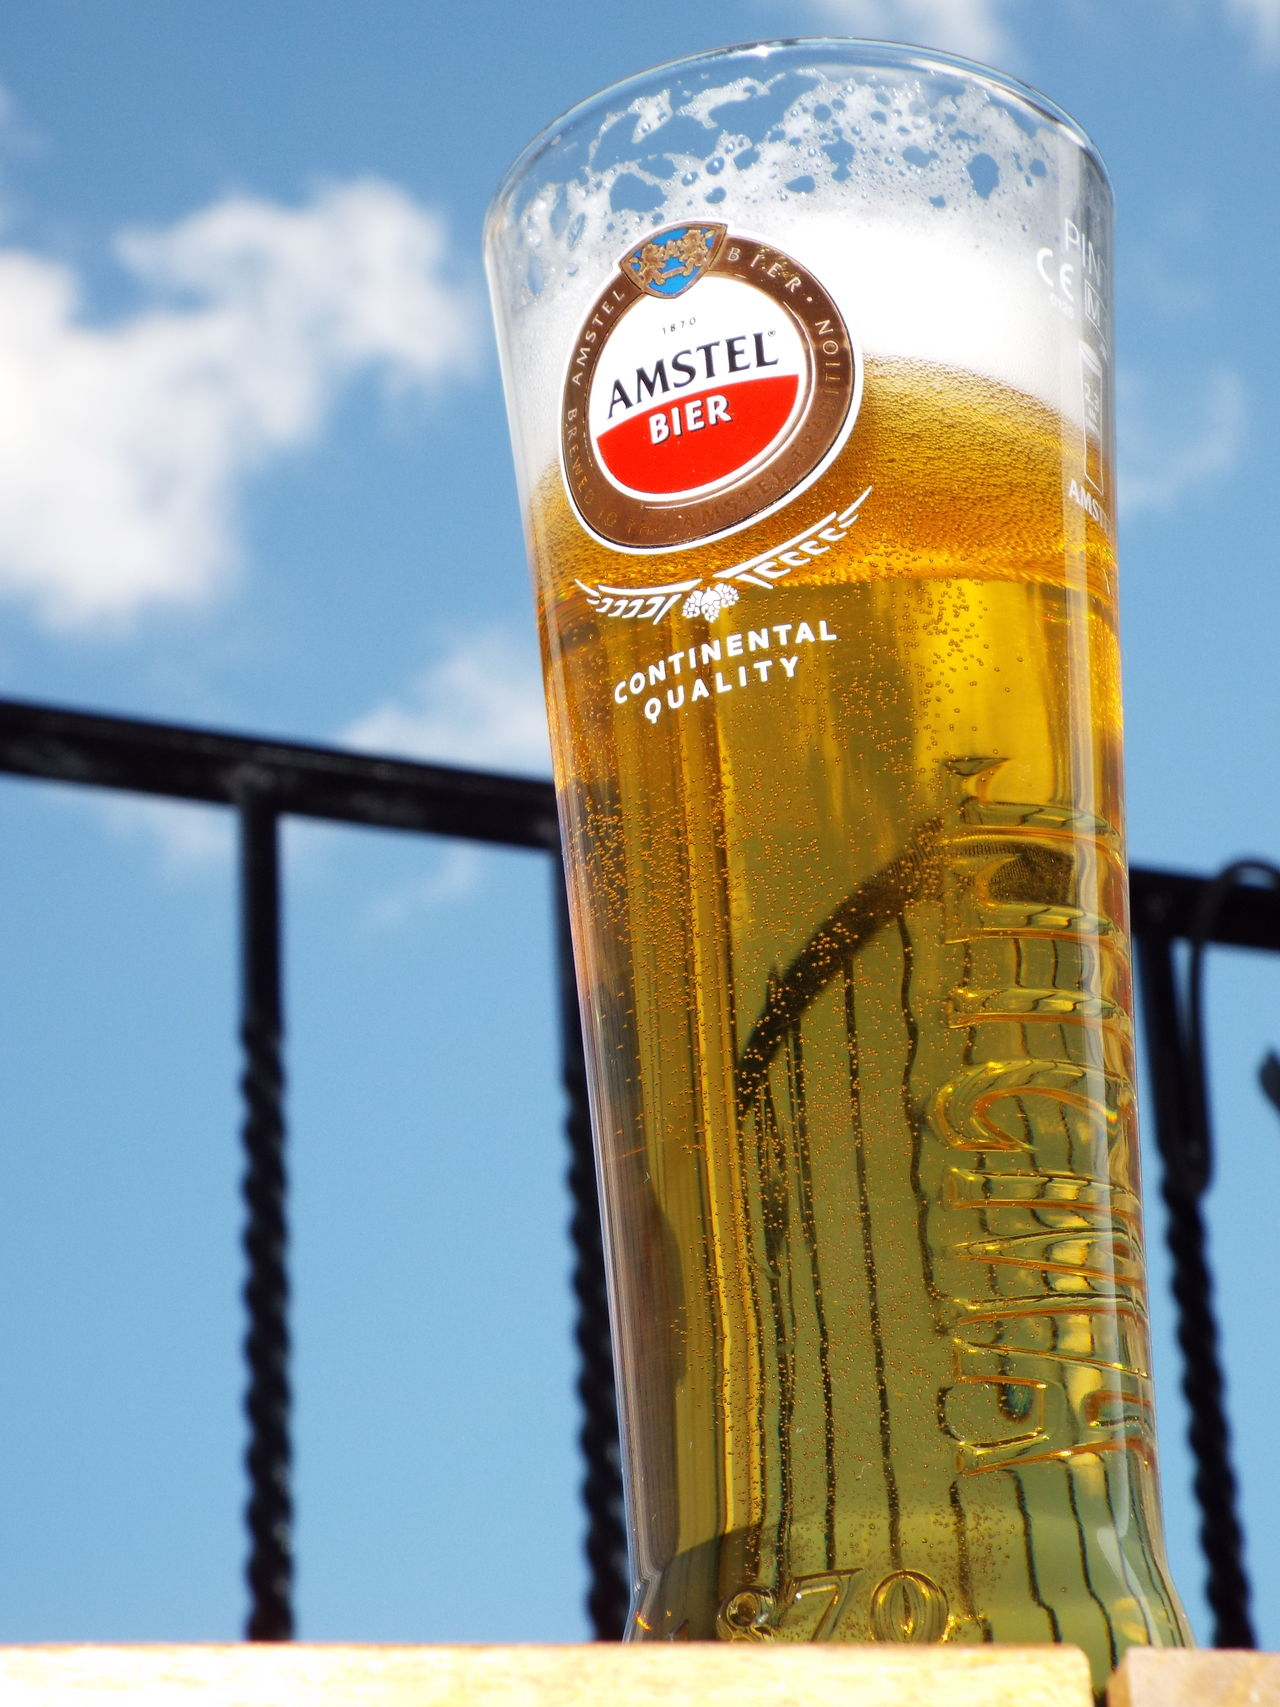 Enjoying a drink of Amstel at my Juliet balcony Relaxing Enjoying Life Balcony Juliet Balcony Beer Amstel Blue Sky Sky And Clouds Blue Wave 43 Golden Moments